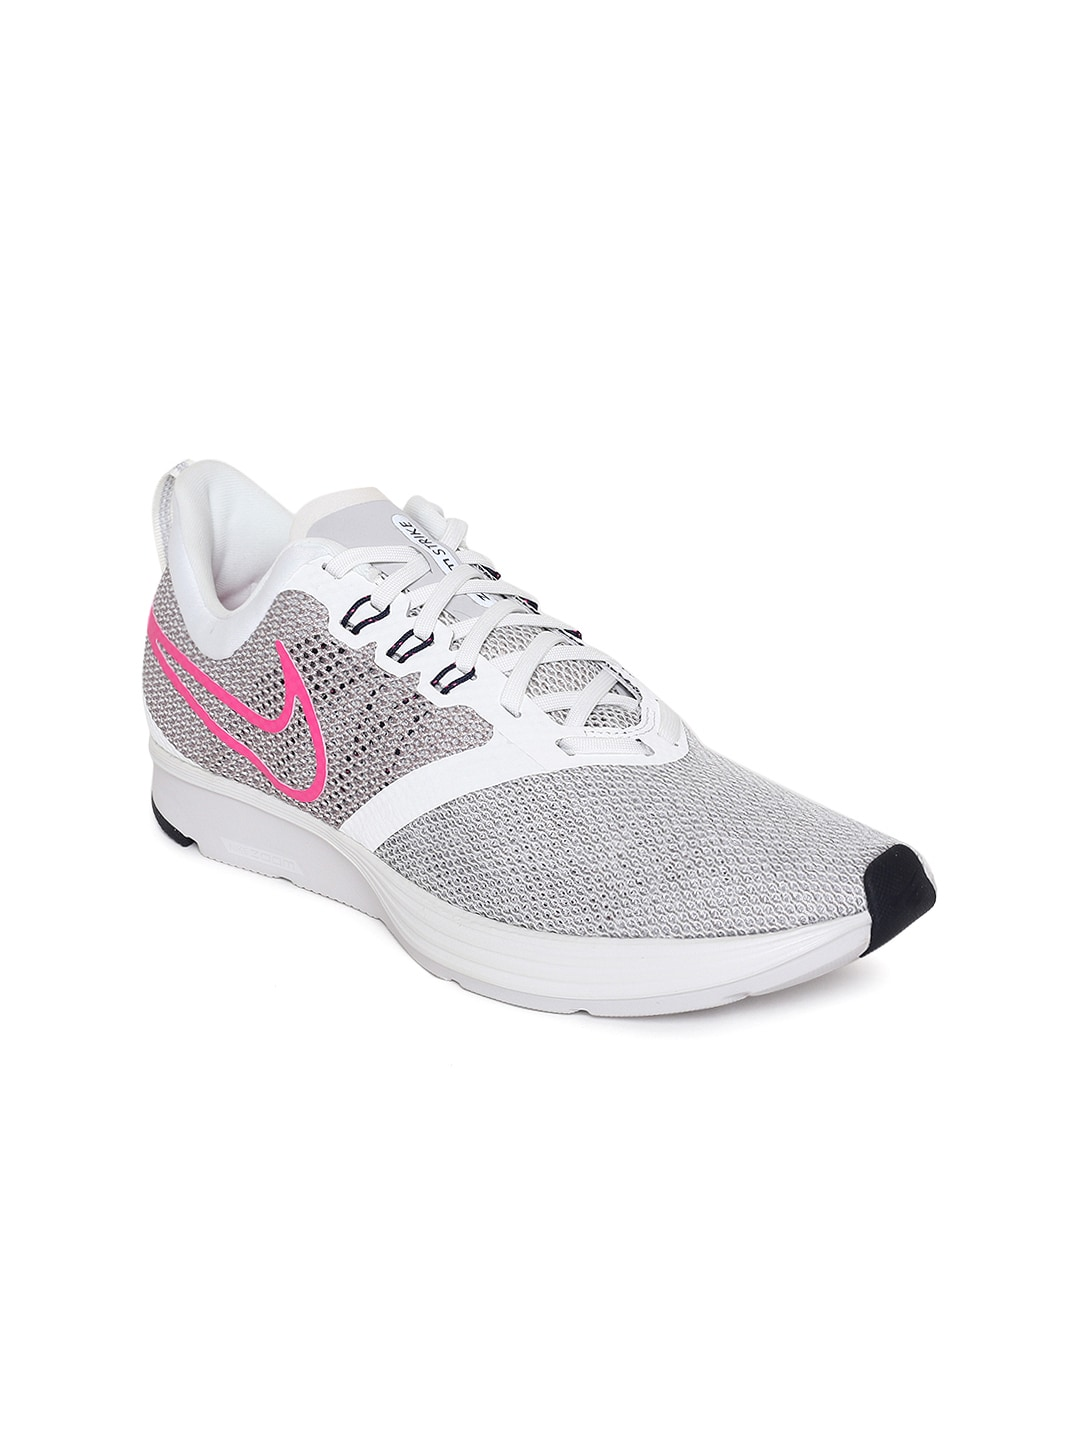 04a34efa105d Nike Running Shoes - Buy Nike Running Shoes Online